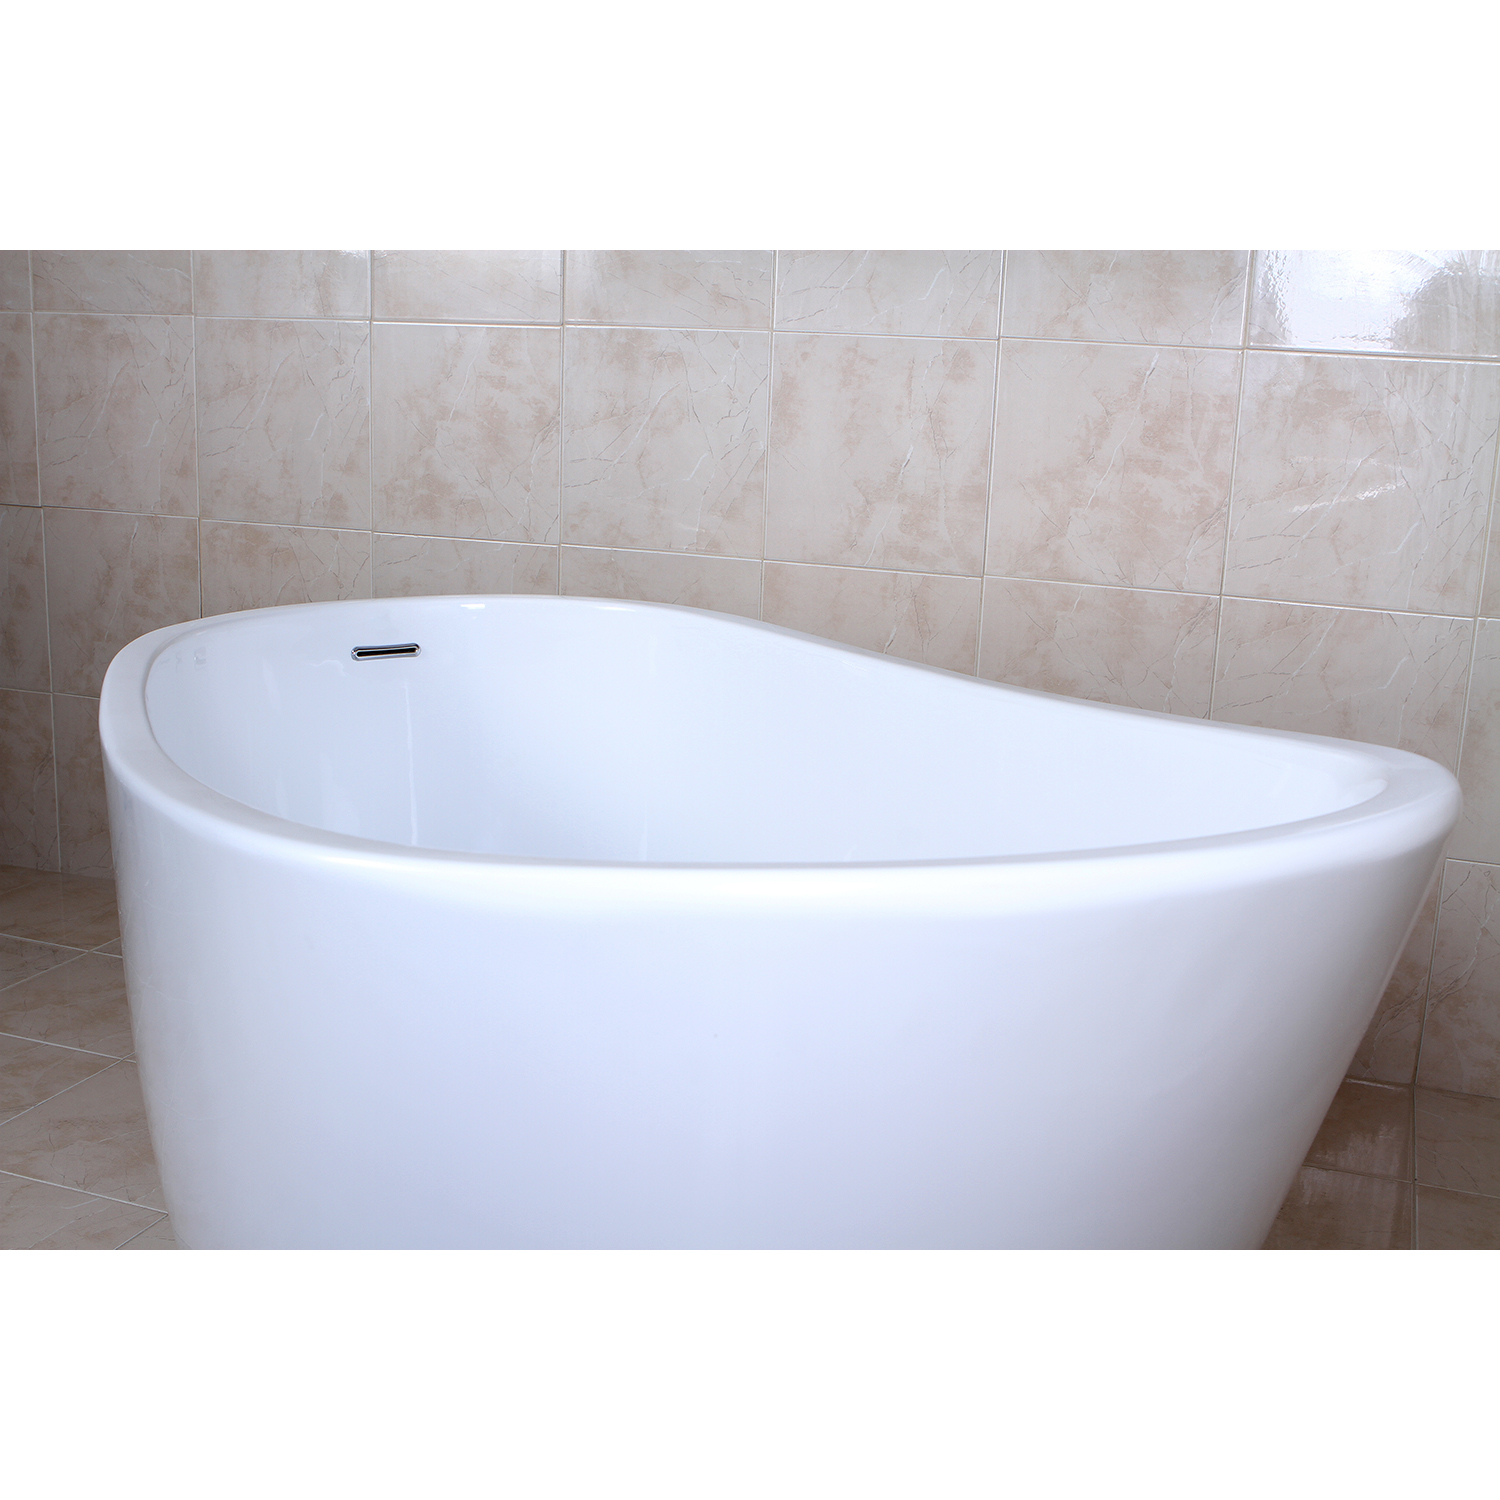 59 Aqua Eden Contemporary Freestanding Acrylic Bathtub